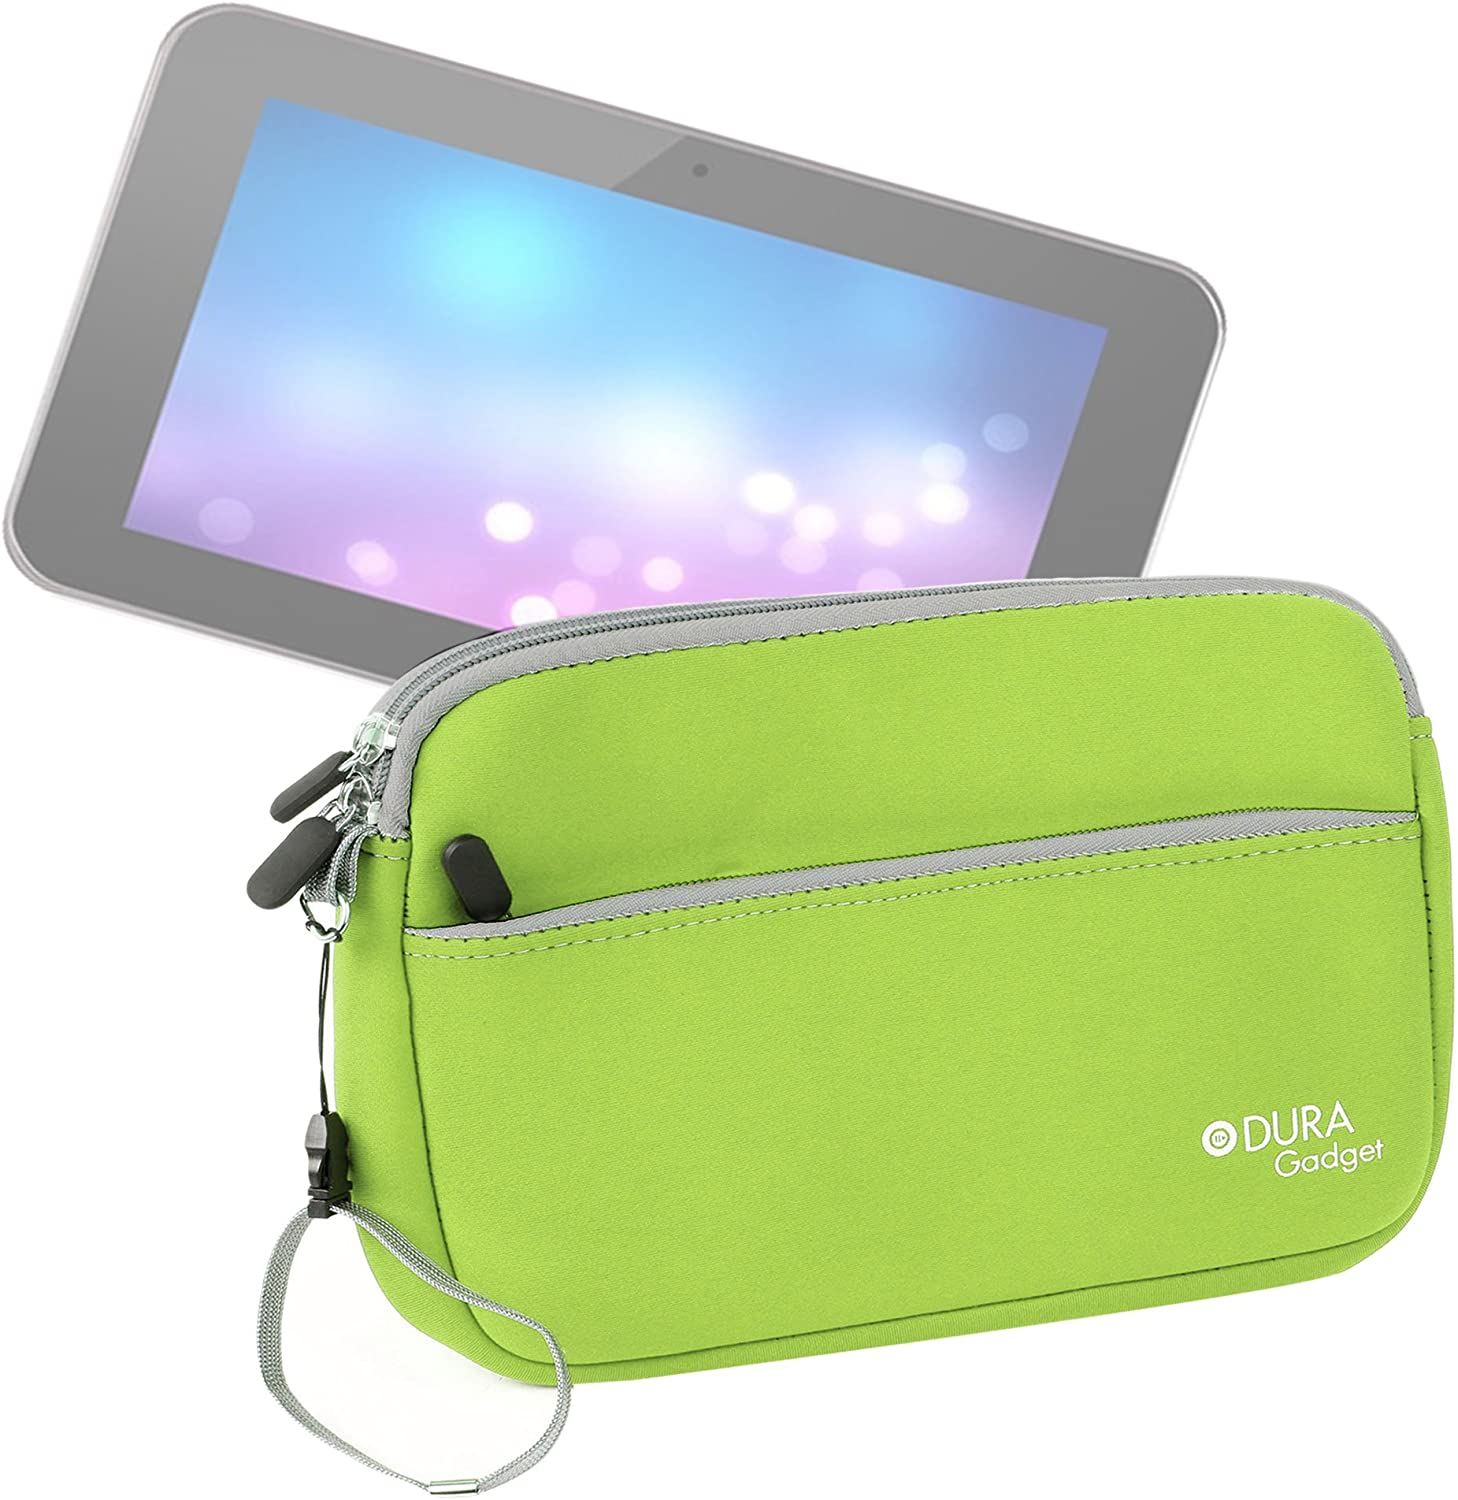 DURAGADGET Neoprene Green Cover with Front Storage Pocket - Compatible with Dell Venue 8 /TabletExpress Allwinner A20 & DMG T909 Tablets